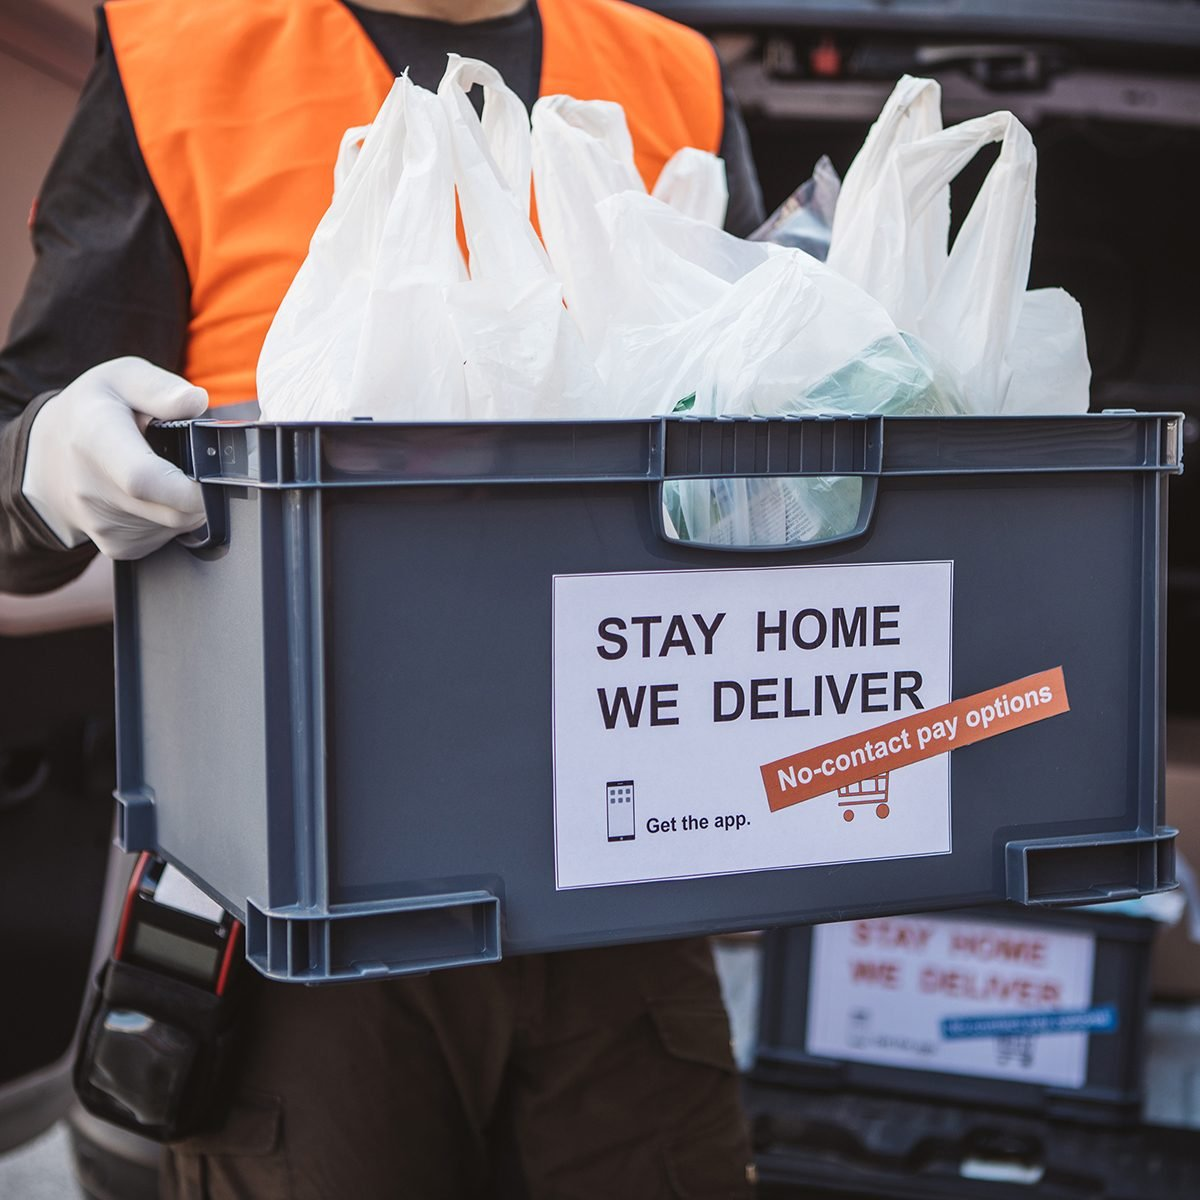 GROCERY SHOPPING ​ RE-IMAGINED​ Food Trends Report, Delivering food ordered online while in home isolation during quarantine. Stay home we deliver sign on box.